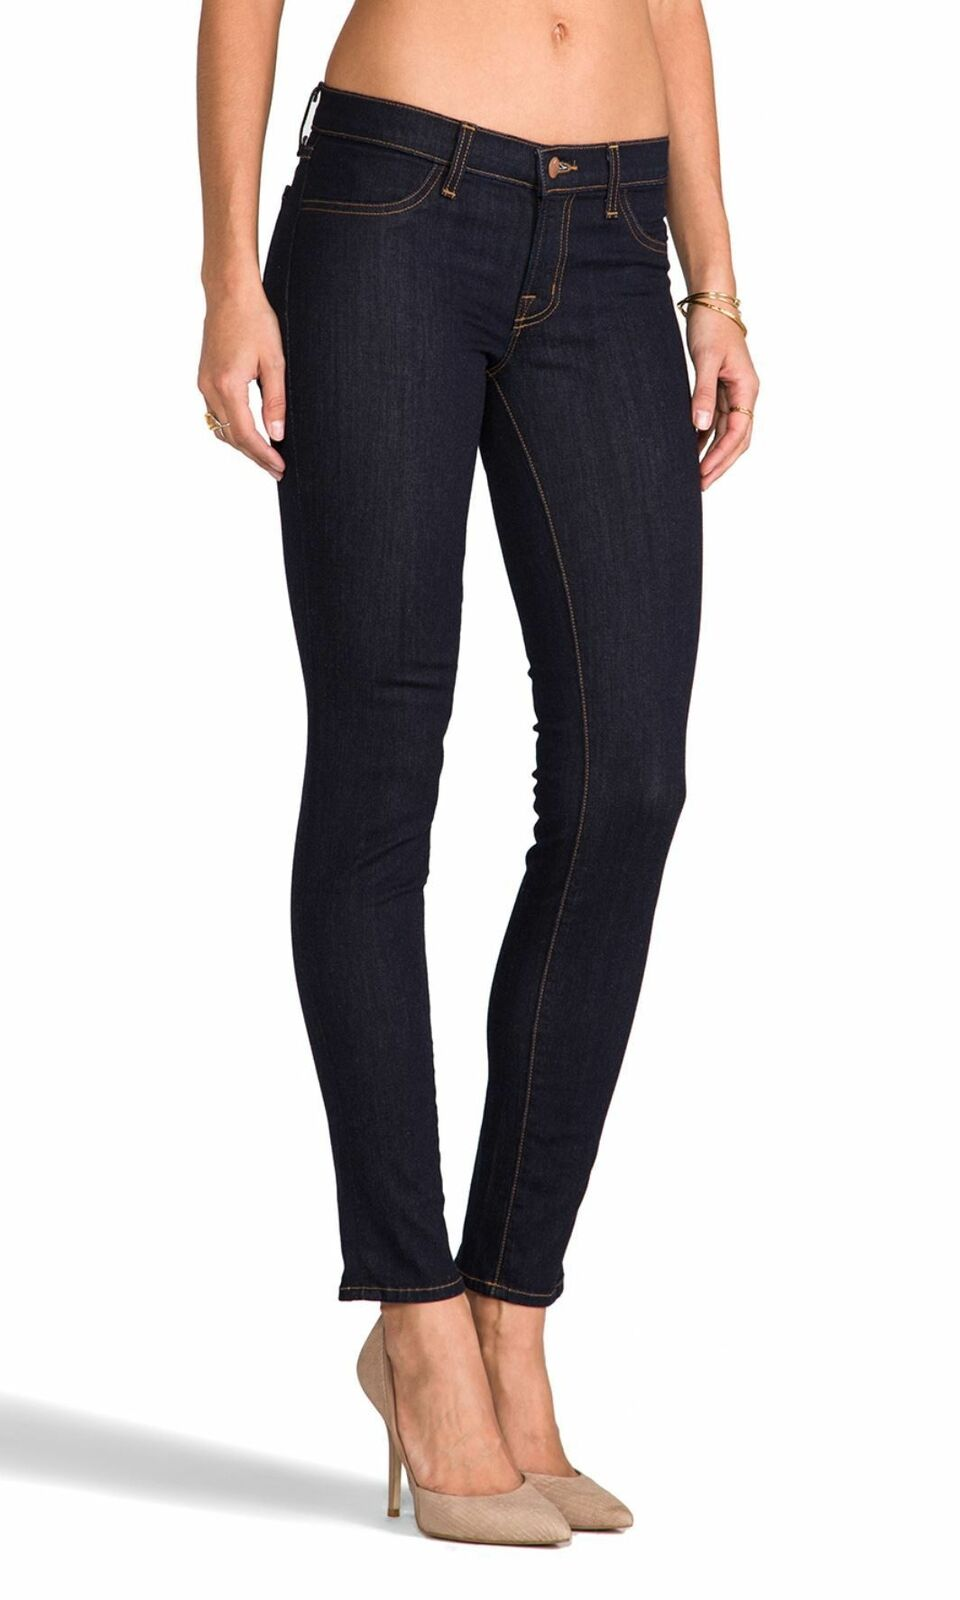 J BRAND Starless Leggings Dark bluee Stretchy Skinny Jeans 25 MINT